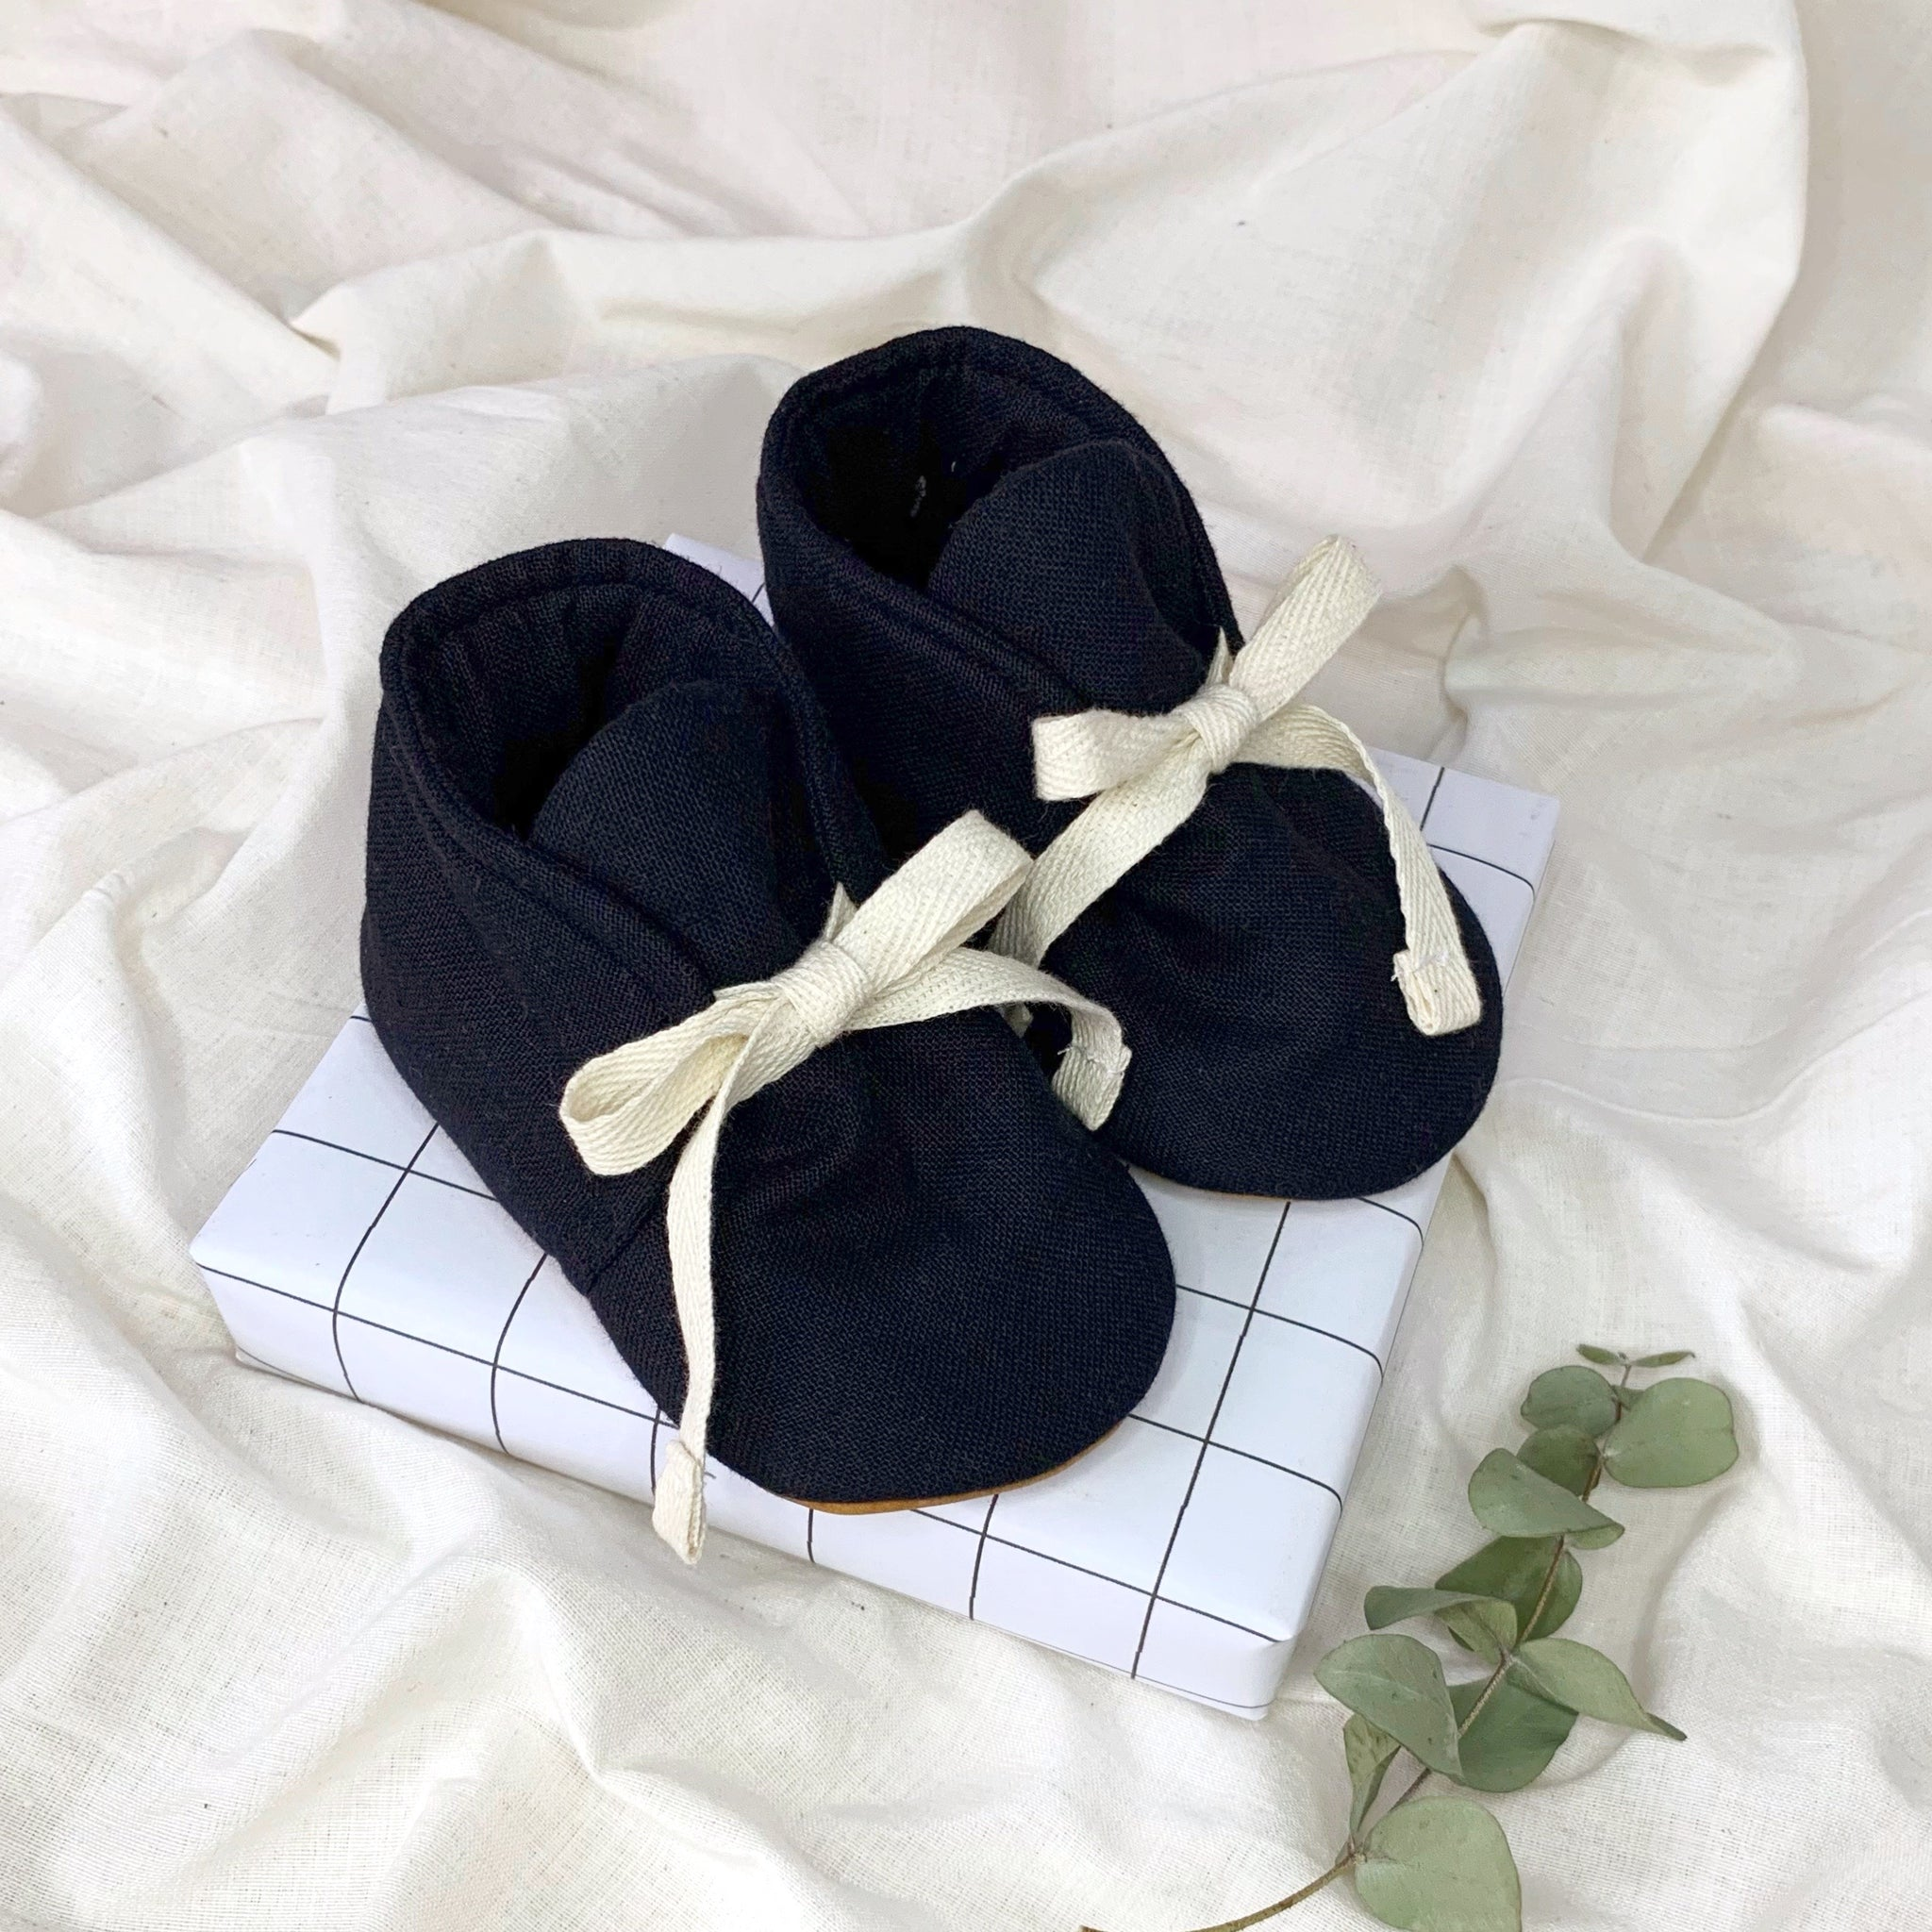 Organic Cotton Mini Shoes - Black